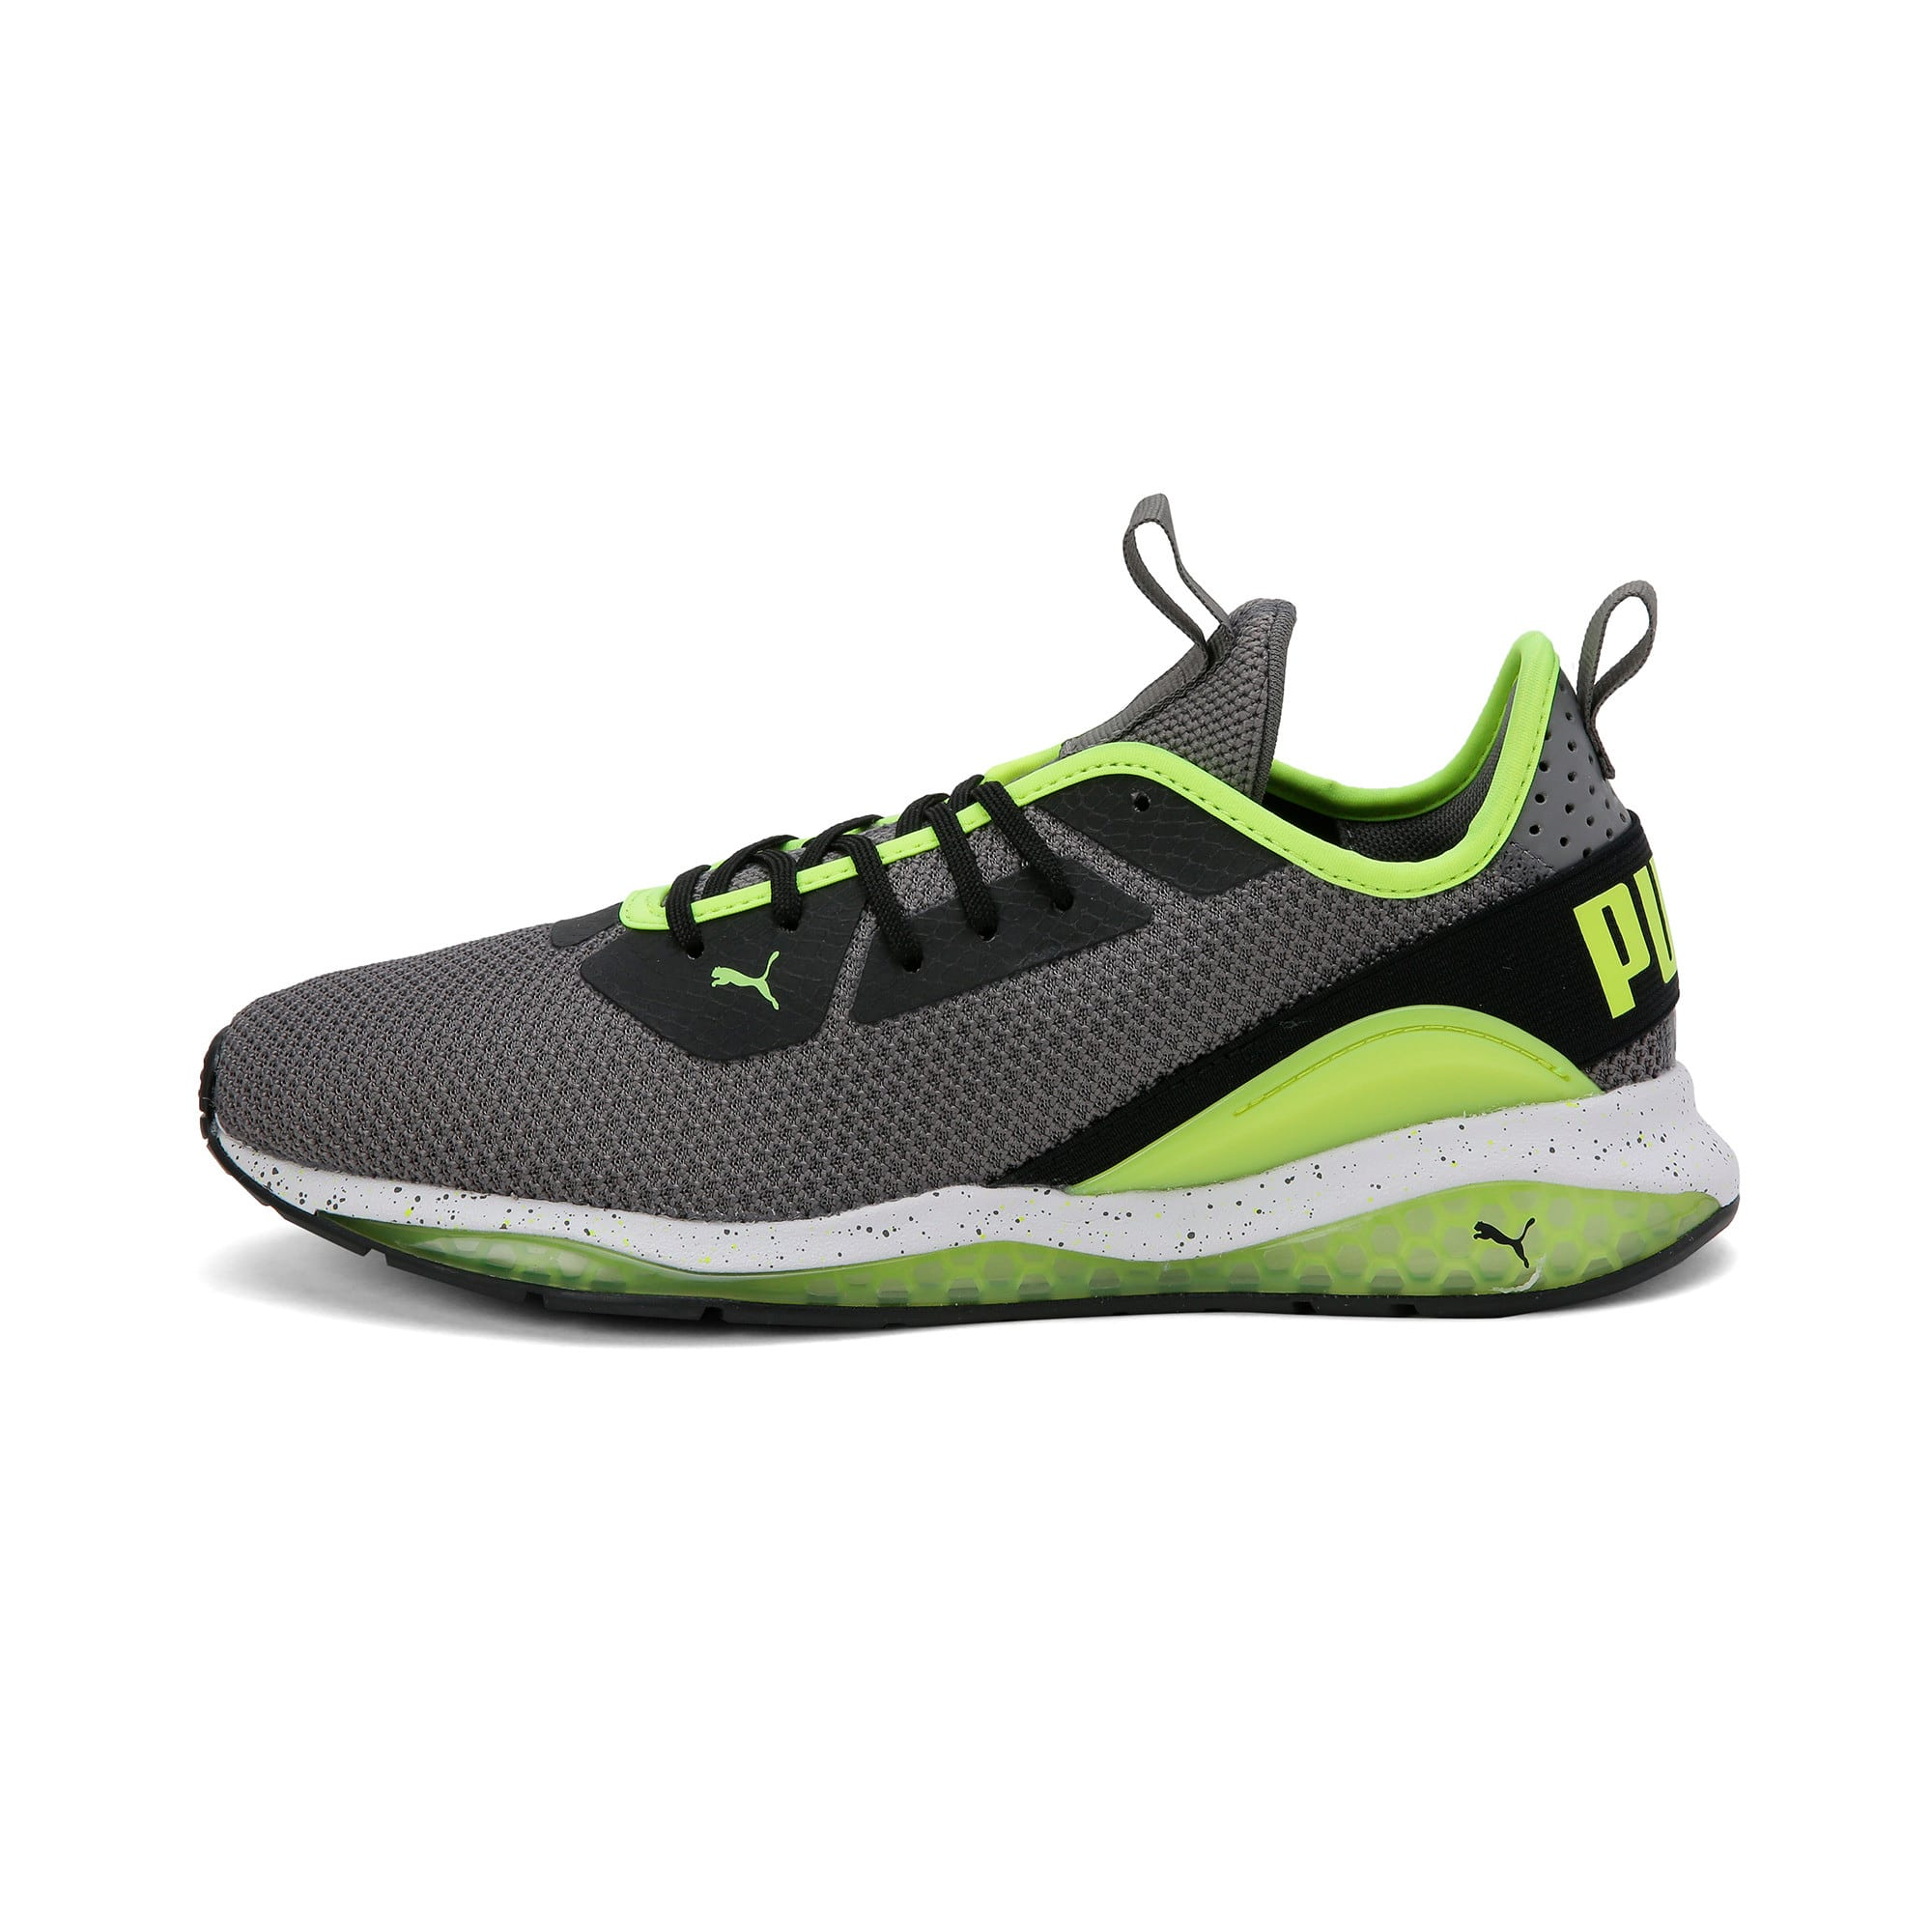 Thumbnail 1 of Cell Descend Weave Running Trainers, CASTLEROCK-Black-Yellow, medium-IND